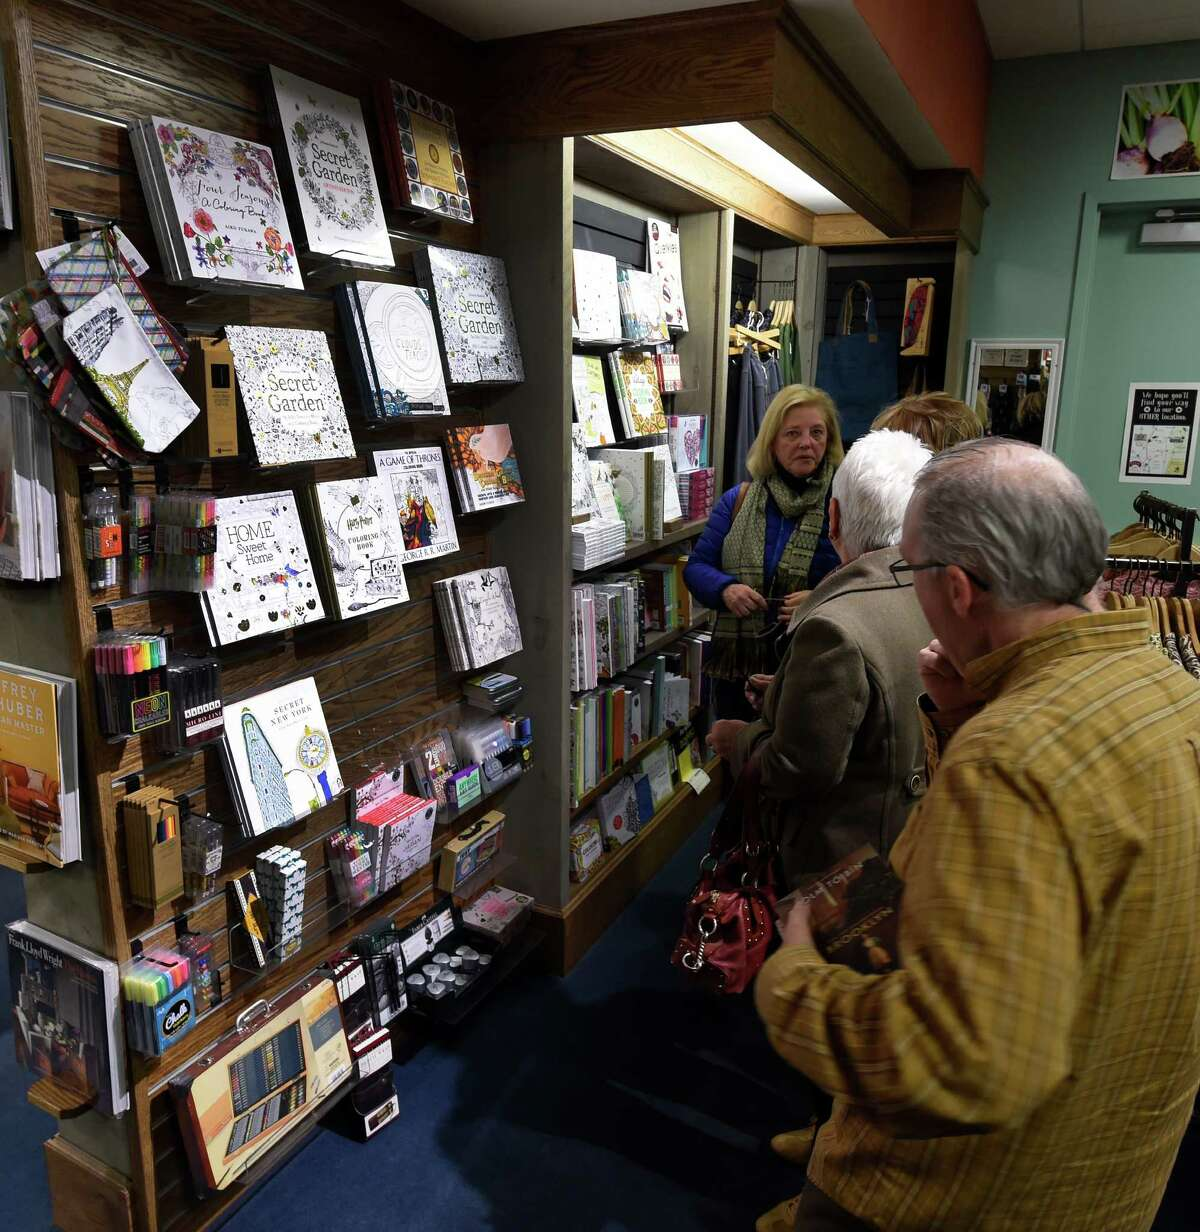 Shoppers look over a display of adult coloring books at the Northshire Bookstore Wednesday Dec. 16, 2015 in Saratoga Springs, N.Y. (Skip Dickstein/Times Union)